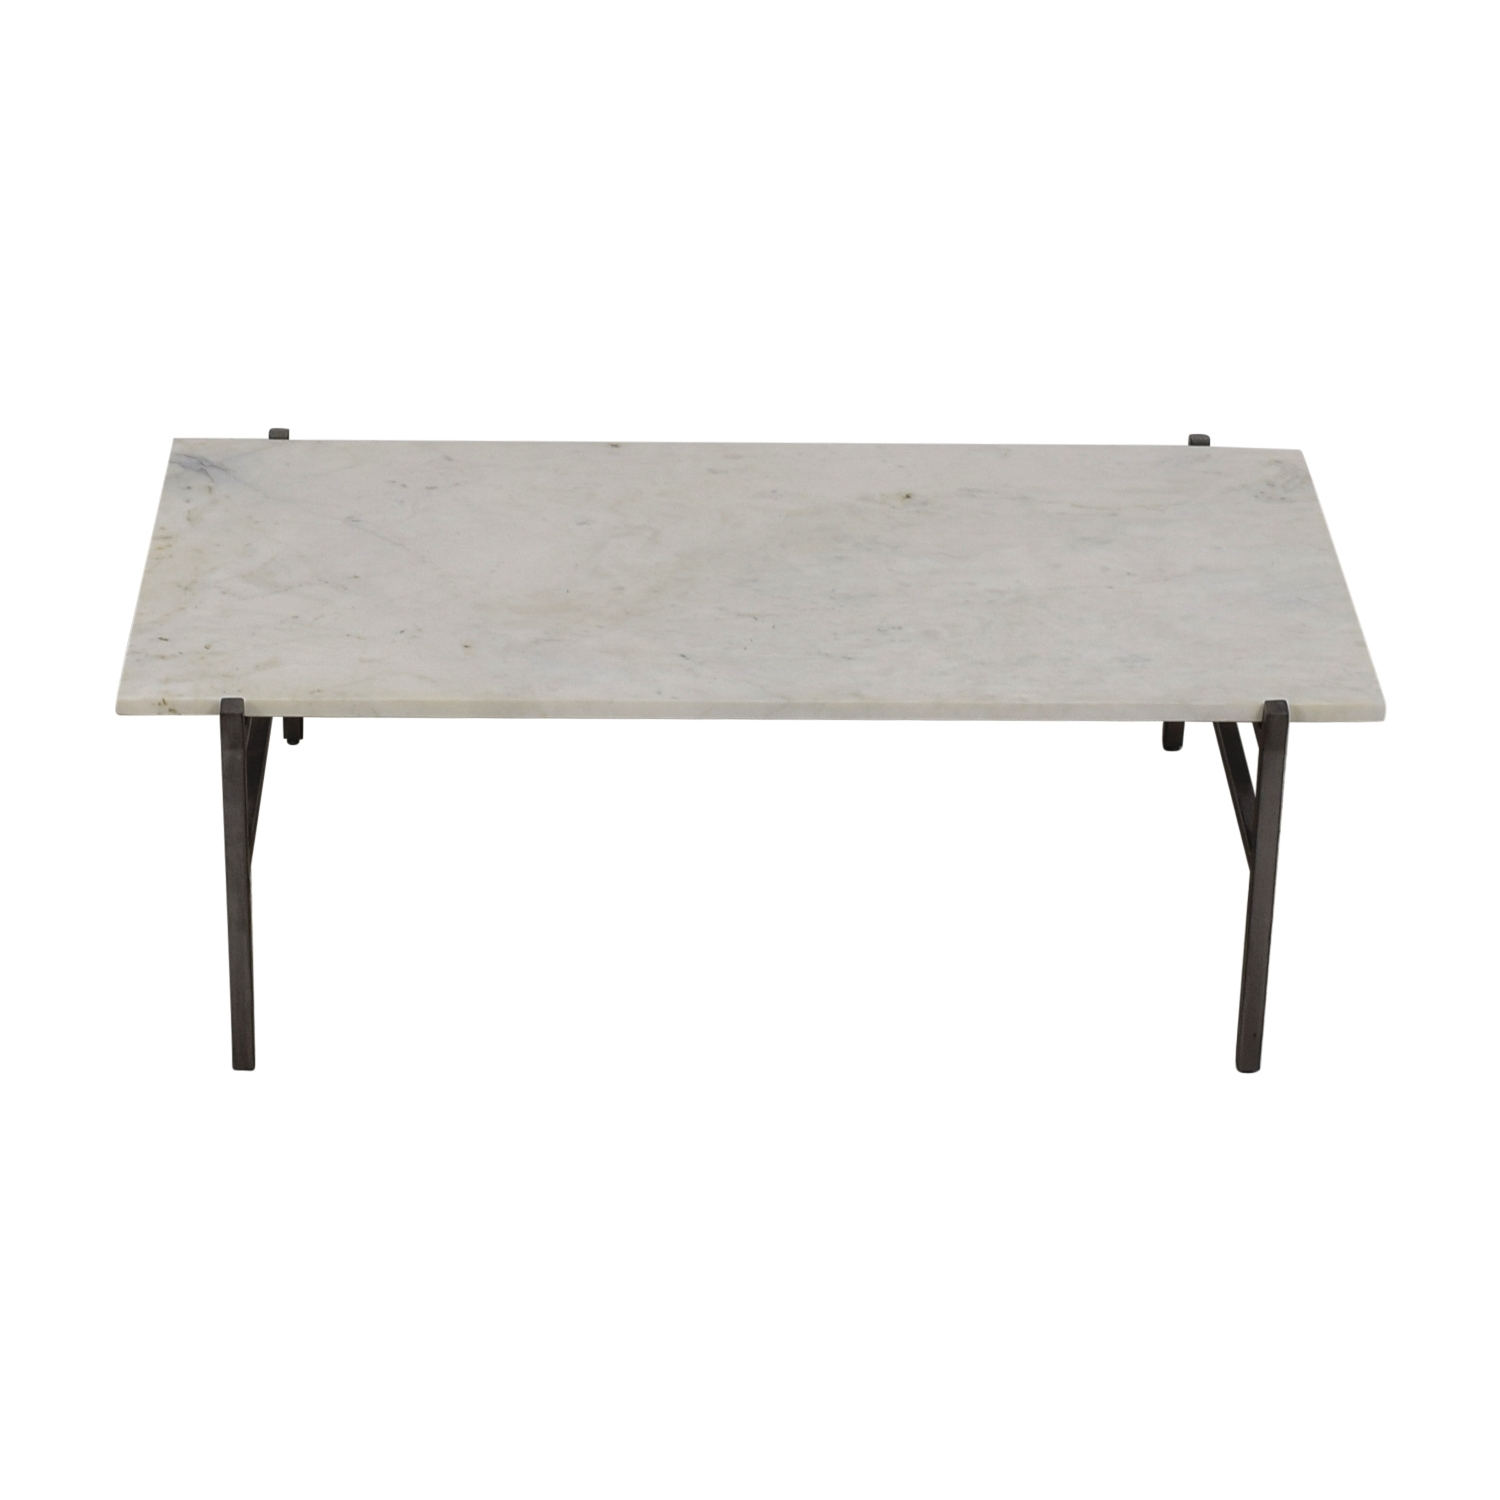 24% Off - Cb2 Cb2 Slab Small Marble Coffee Table With Antiqued pertaining to Slab Small Marble Coffee Tables With Antiqued Silver Base (Image 1 of 30)